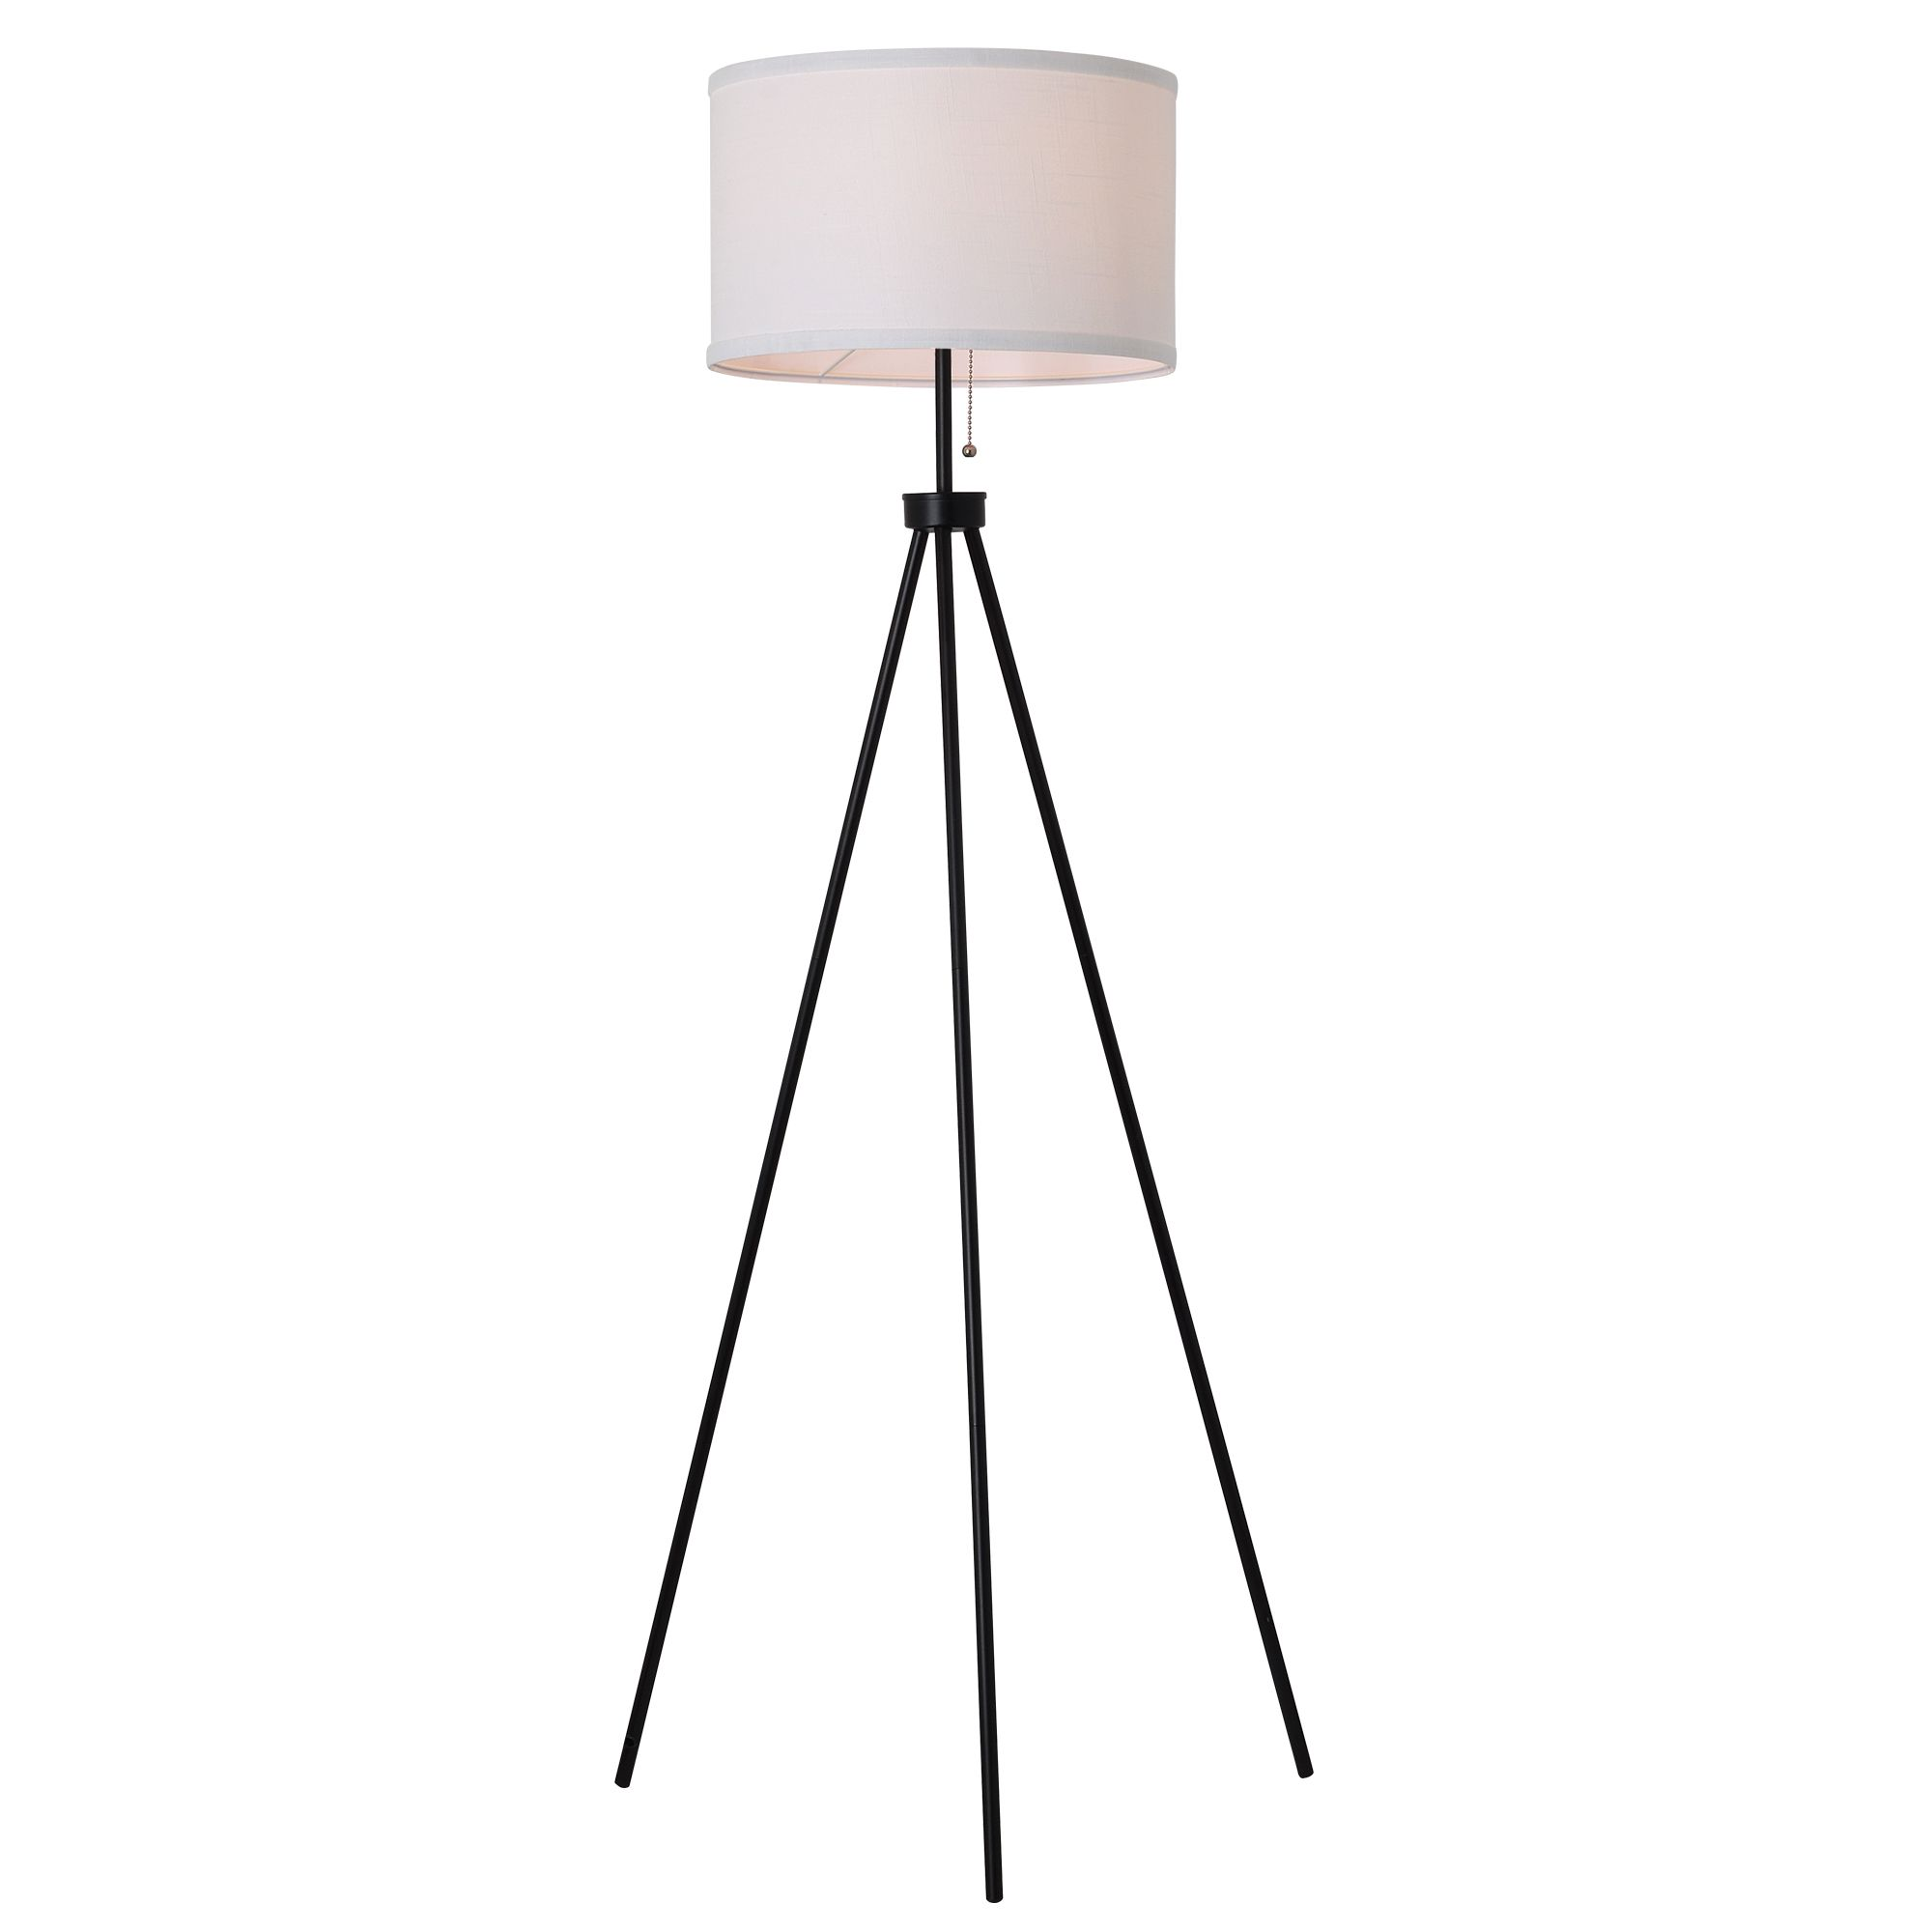 My Favorite Target Lighting Floor Lamp Bedroom Floor Lamps Living Room Target Floor Lamps